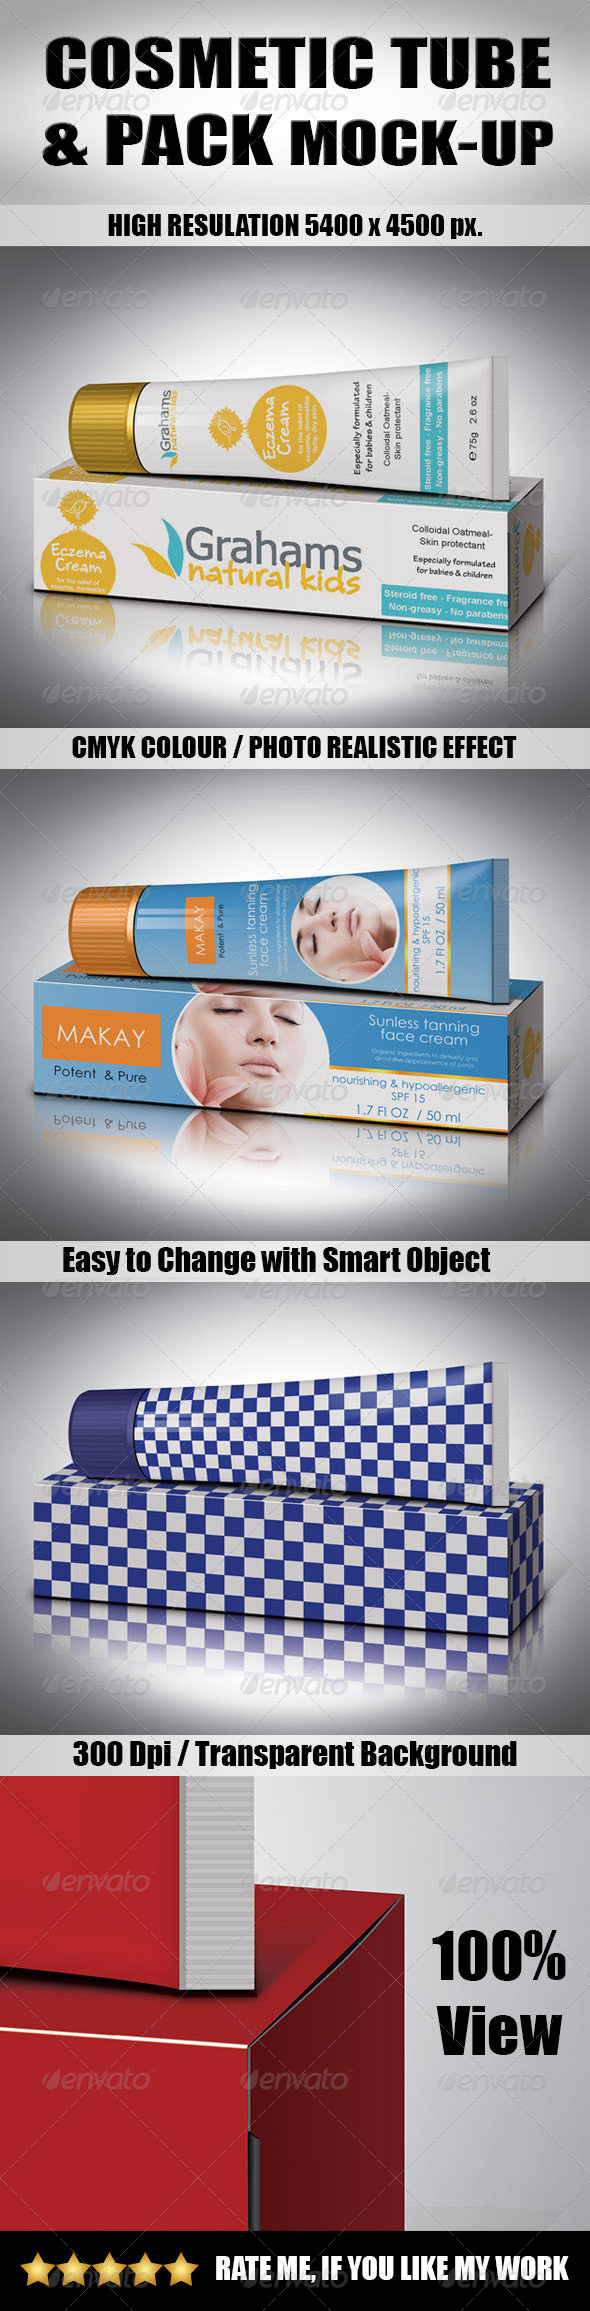 Cosmetic Tube & Pack Mock-Up - Product Mock-Ups Graphics